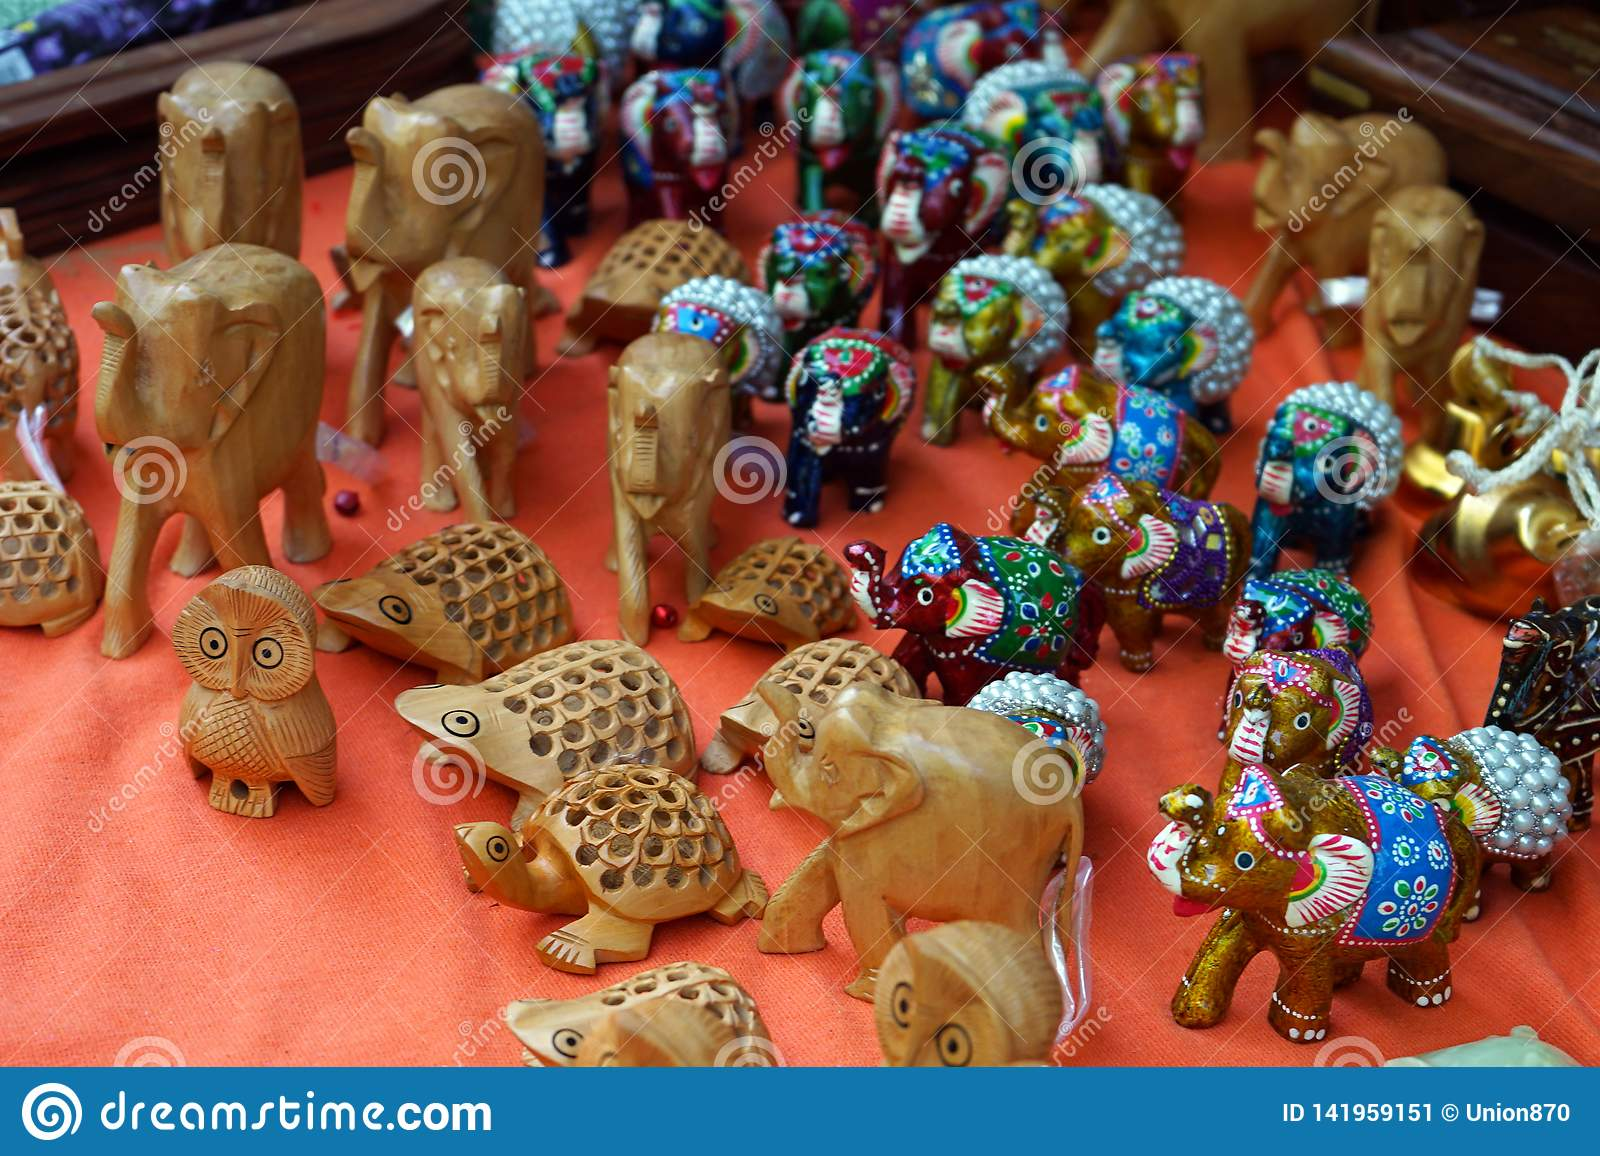 Wooden Small Figurines Of Various Animals On The Counter Of A Street